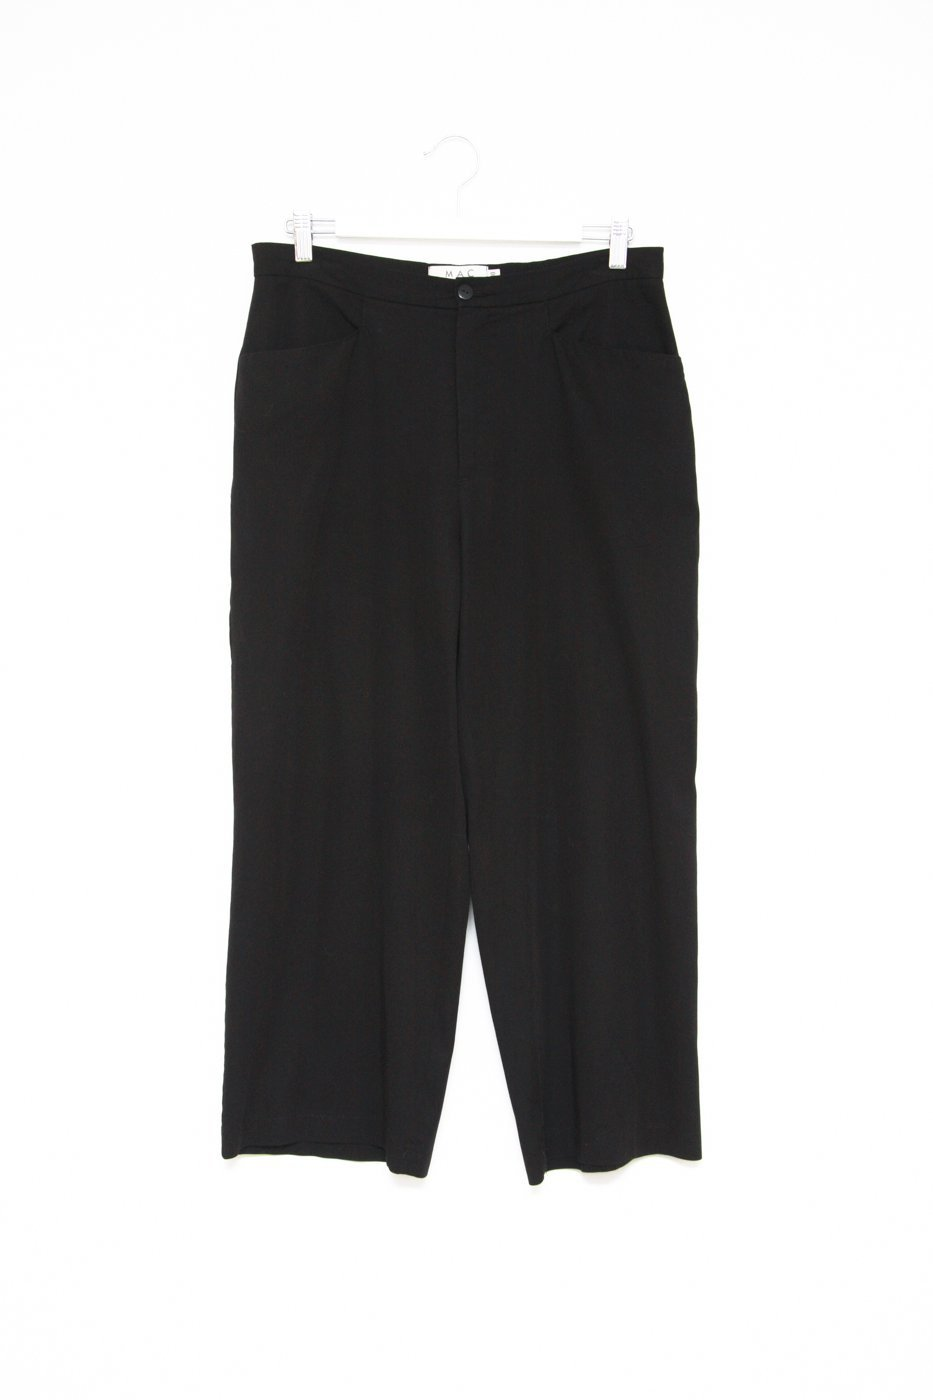 0475_MAC 7/8 BLACK PANTS // 40